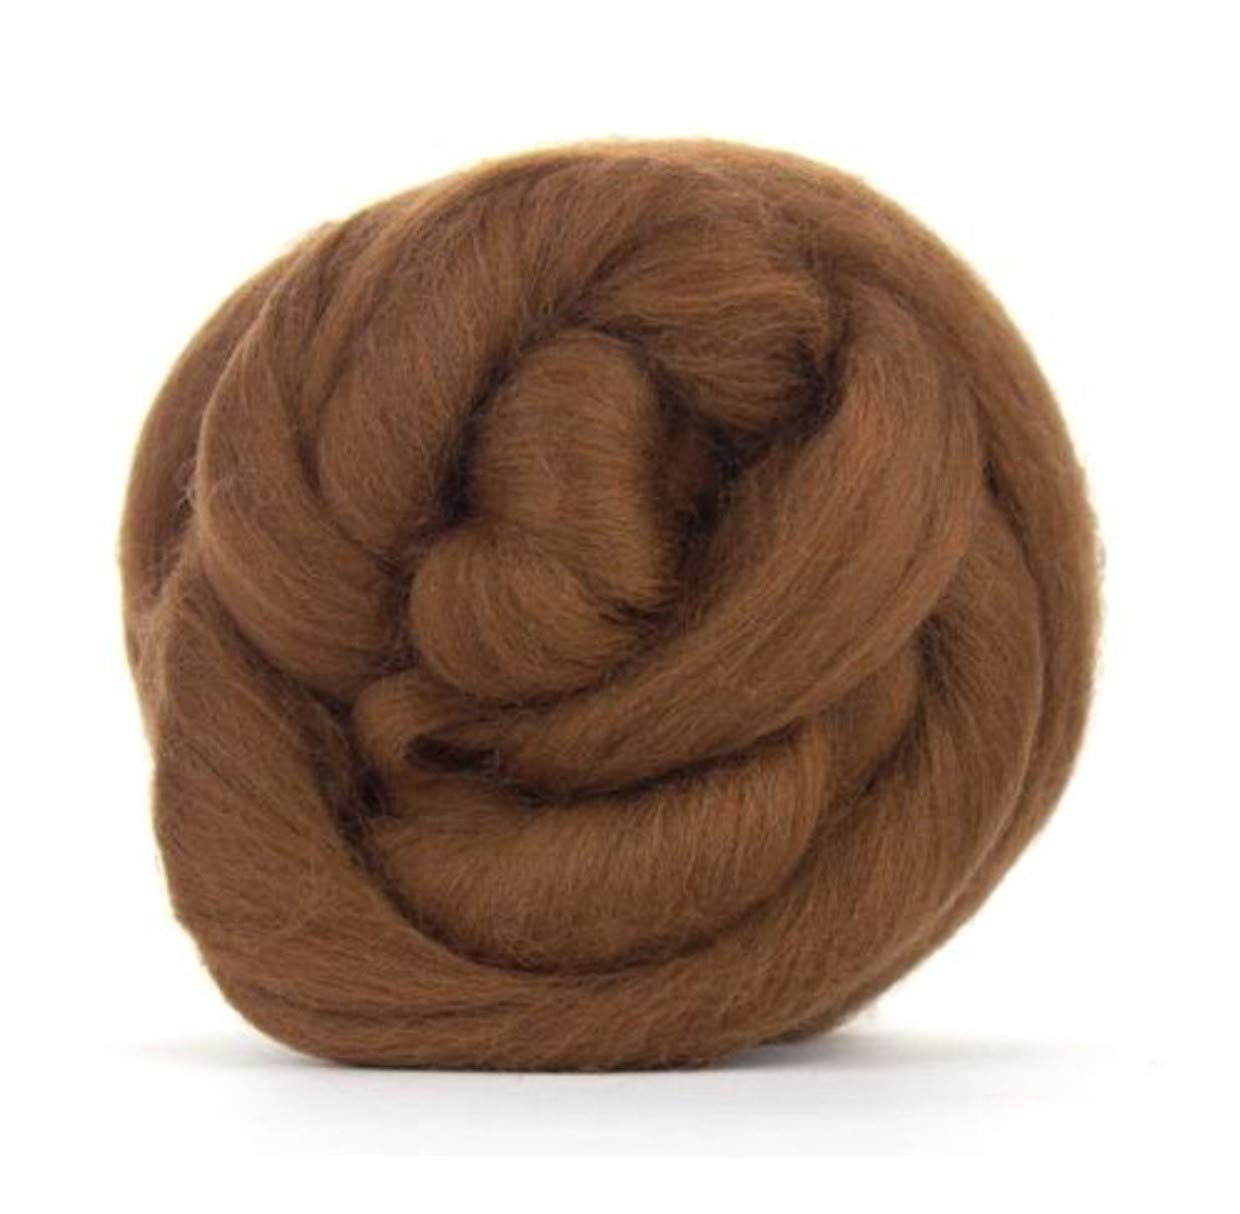 Medium Brown Merino Wool roving/Tops - 50gm. Great for Wet Felting/Needle Felting, and Hand Spinning Projects.